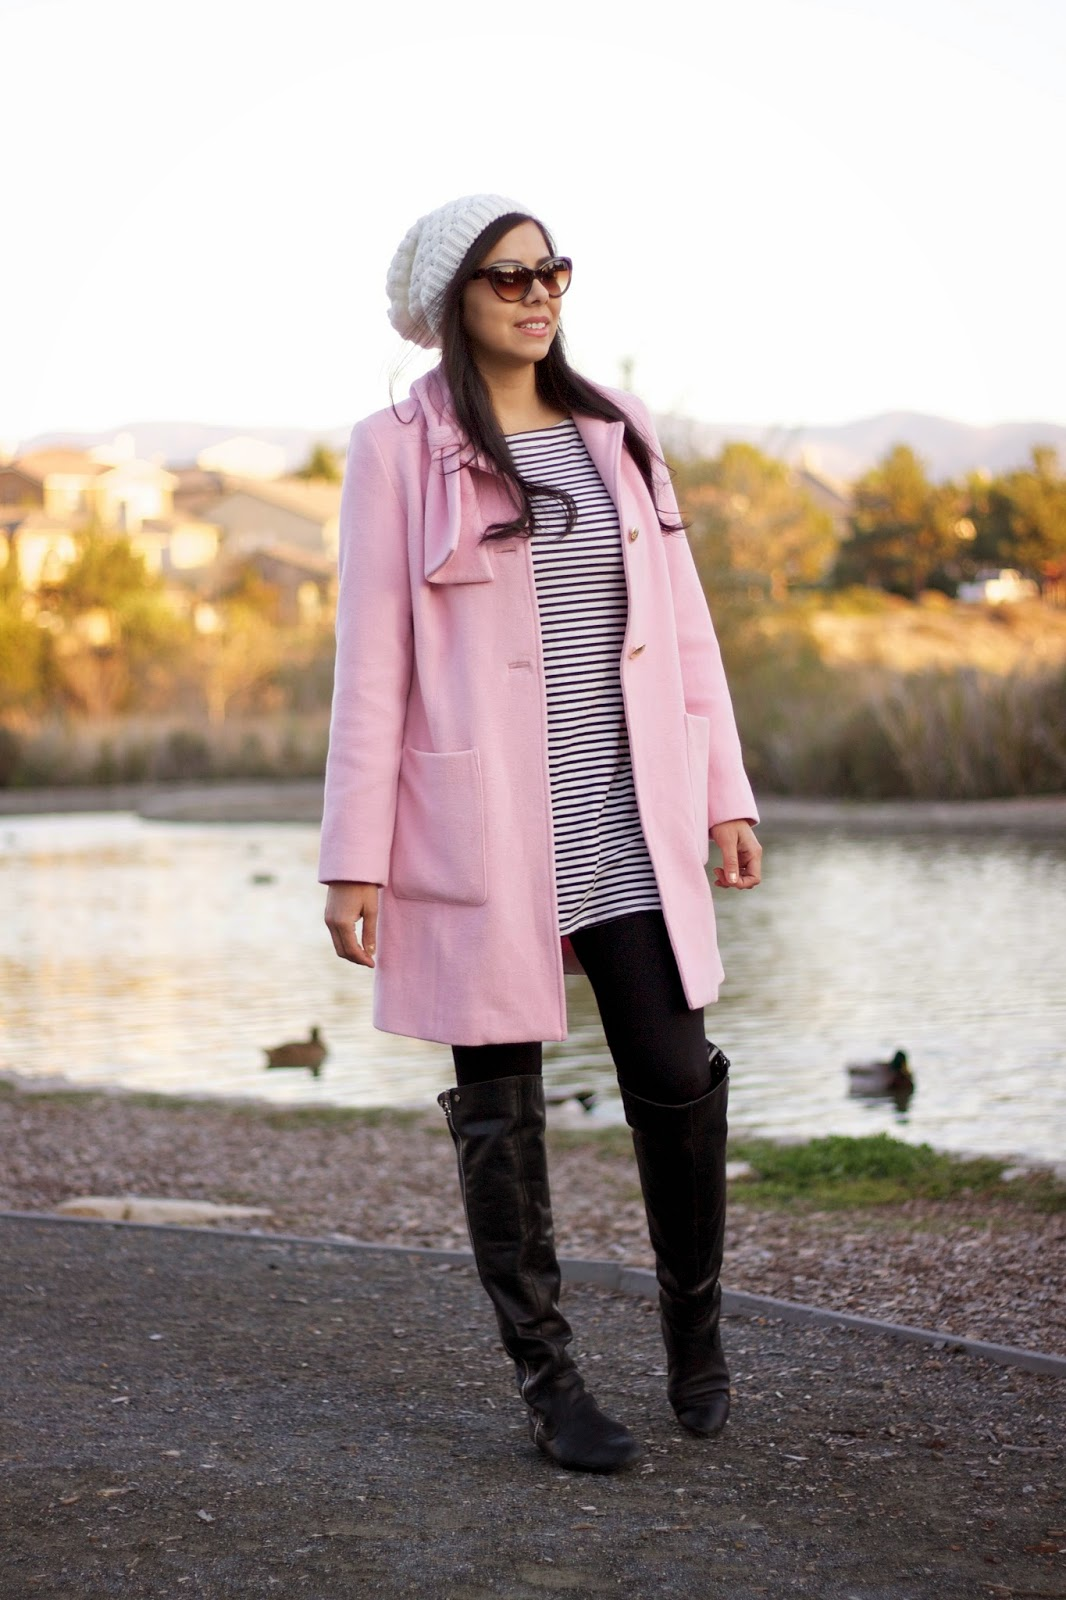 CAbi Clothing, CAbi blogger, CAbi tuscadero, CAbi pink coat, how to wear a pink coat, pink trench coat, how to wear stripes, shop kika striped tunic, kika paprika, kika paprika leggings